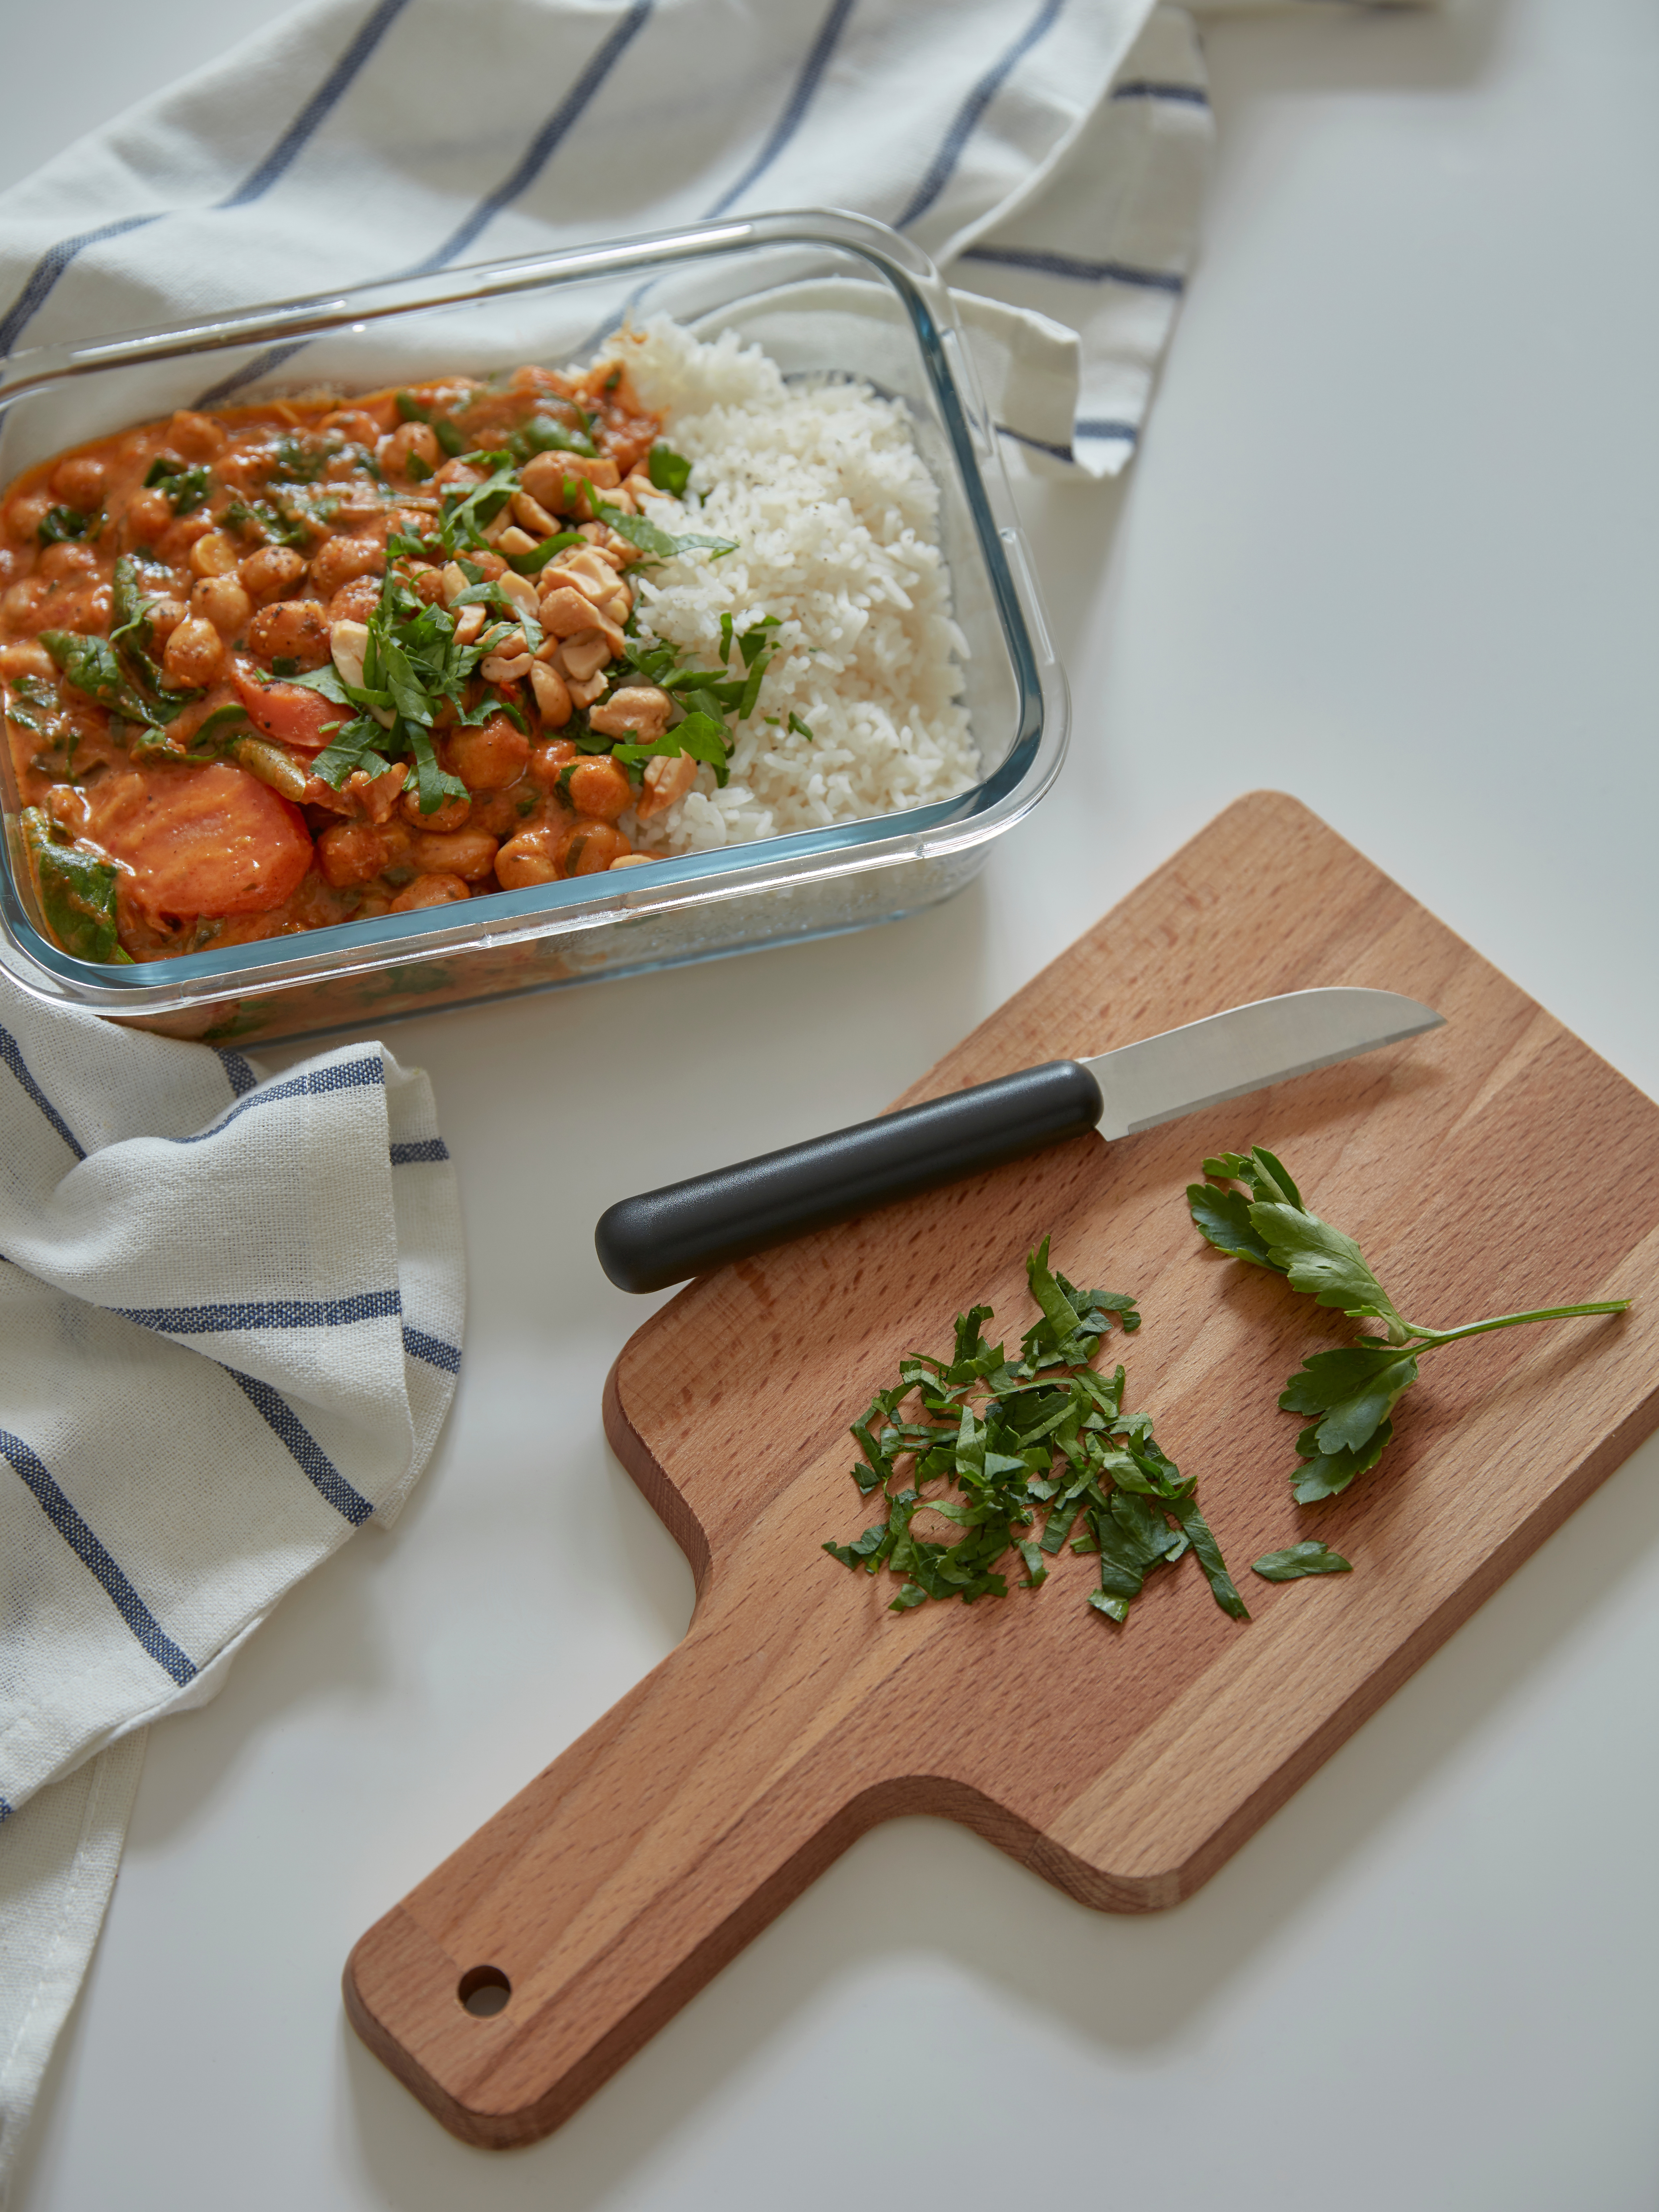 A PROPPMÄTT chopping board in beech with some chopped herbs on it along with a knife, and a glass dish of food on the table.